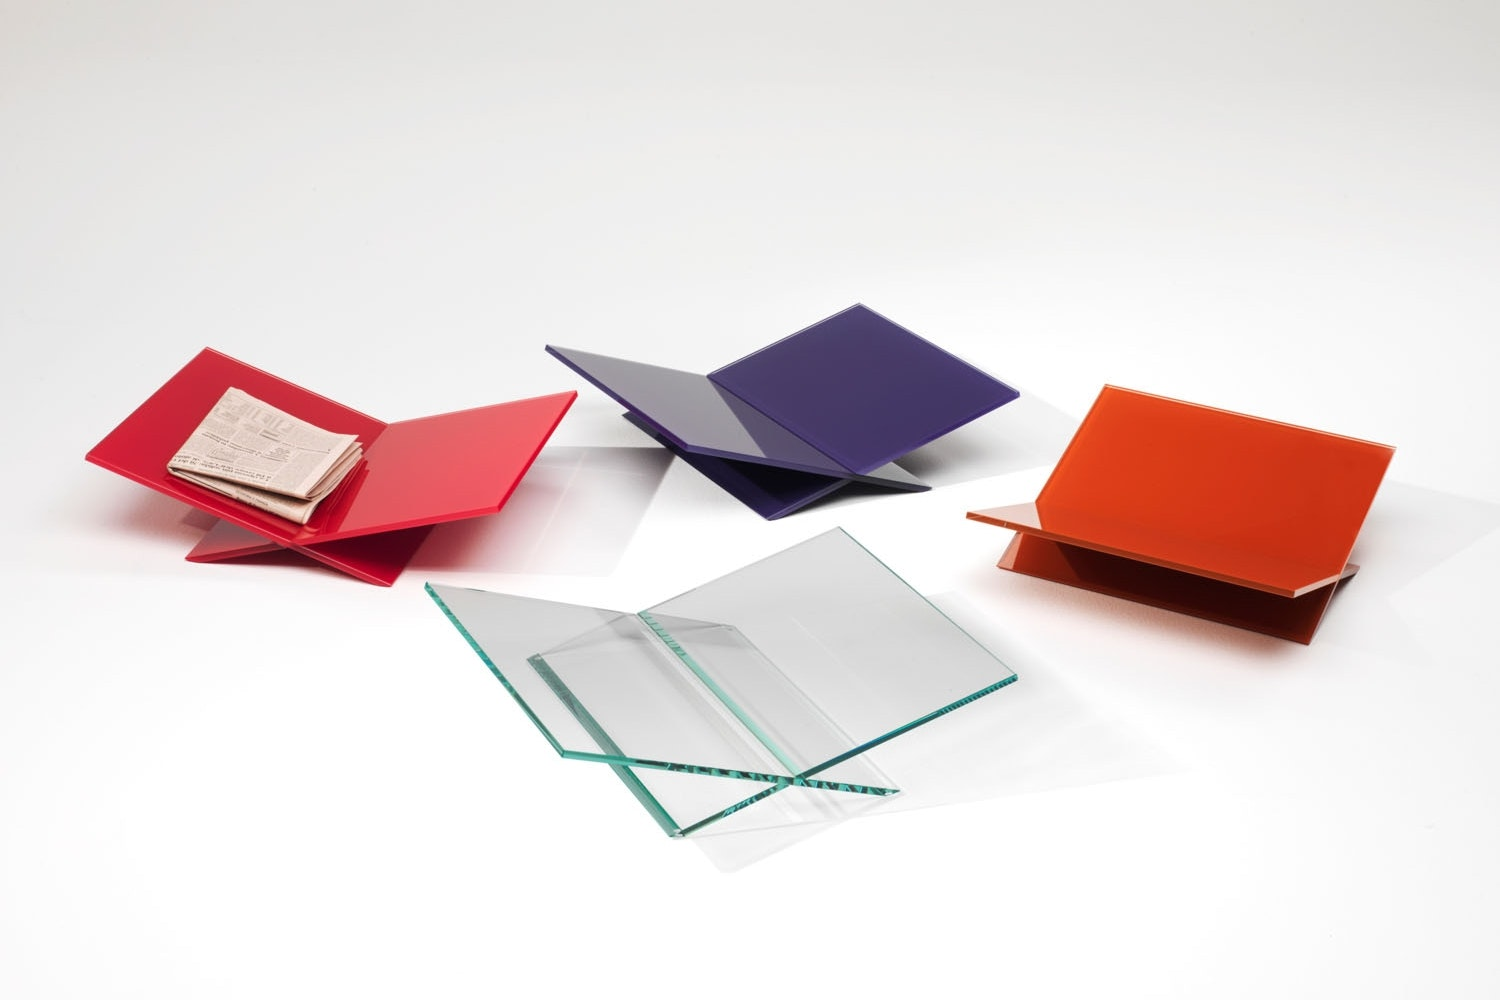 Tutti Frutti Magazine Holder by Piero Lissoni for Glas Italia